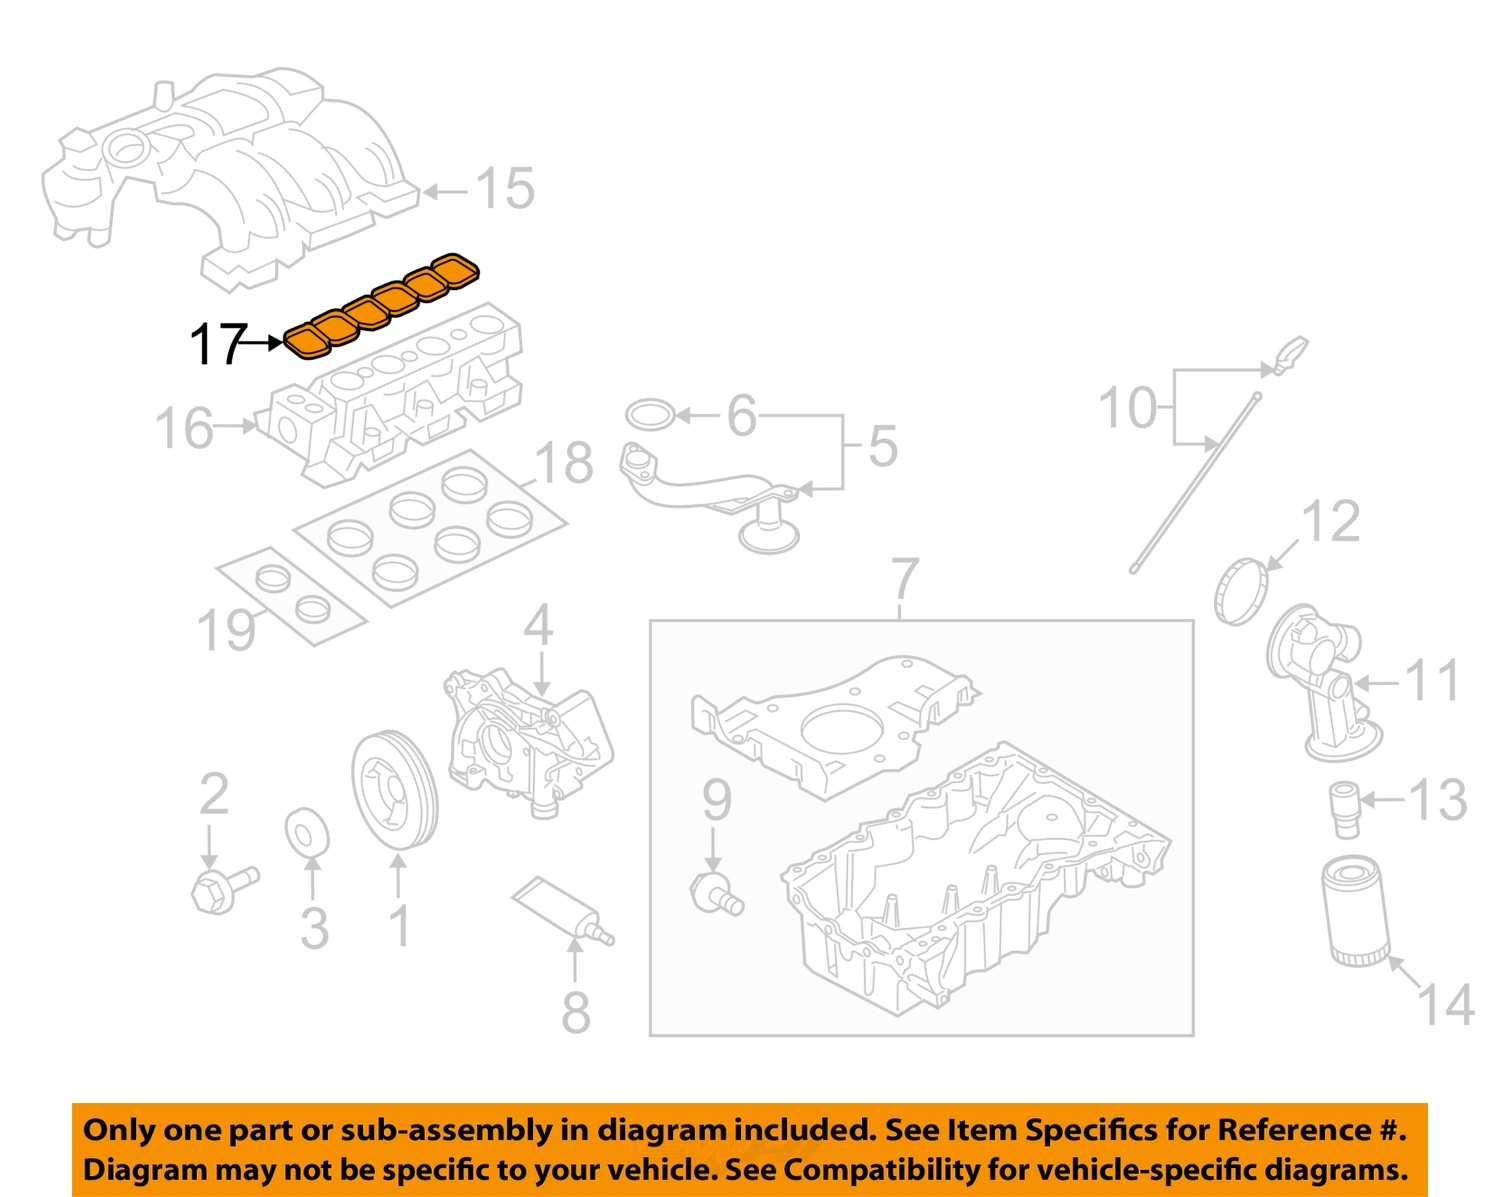 hight resolution of  17 on diagram only genuine oe factory original item